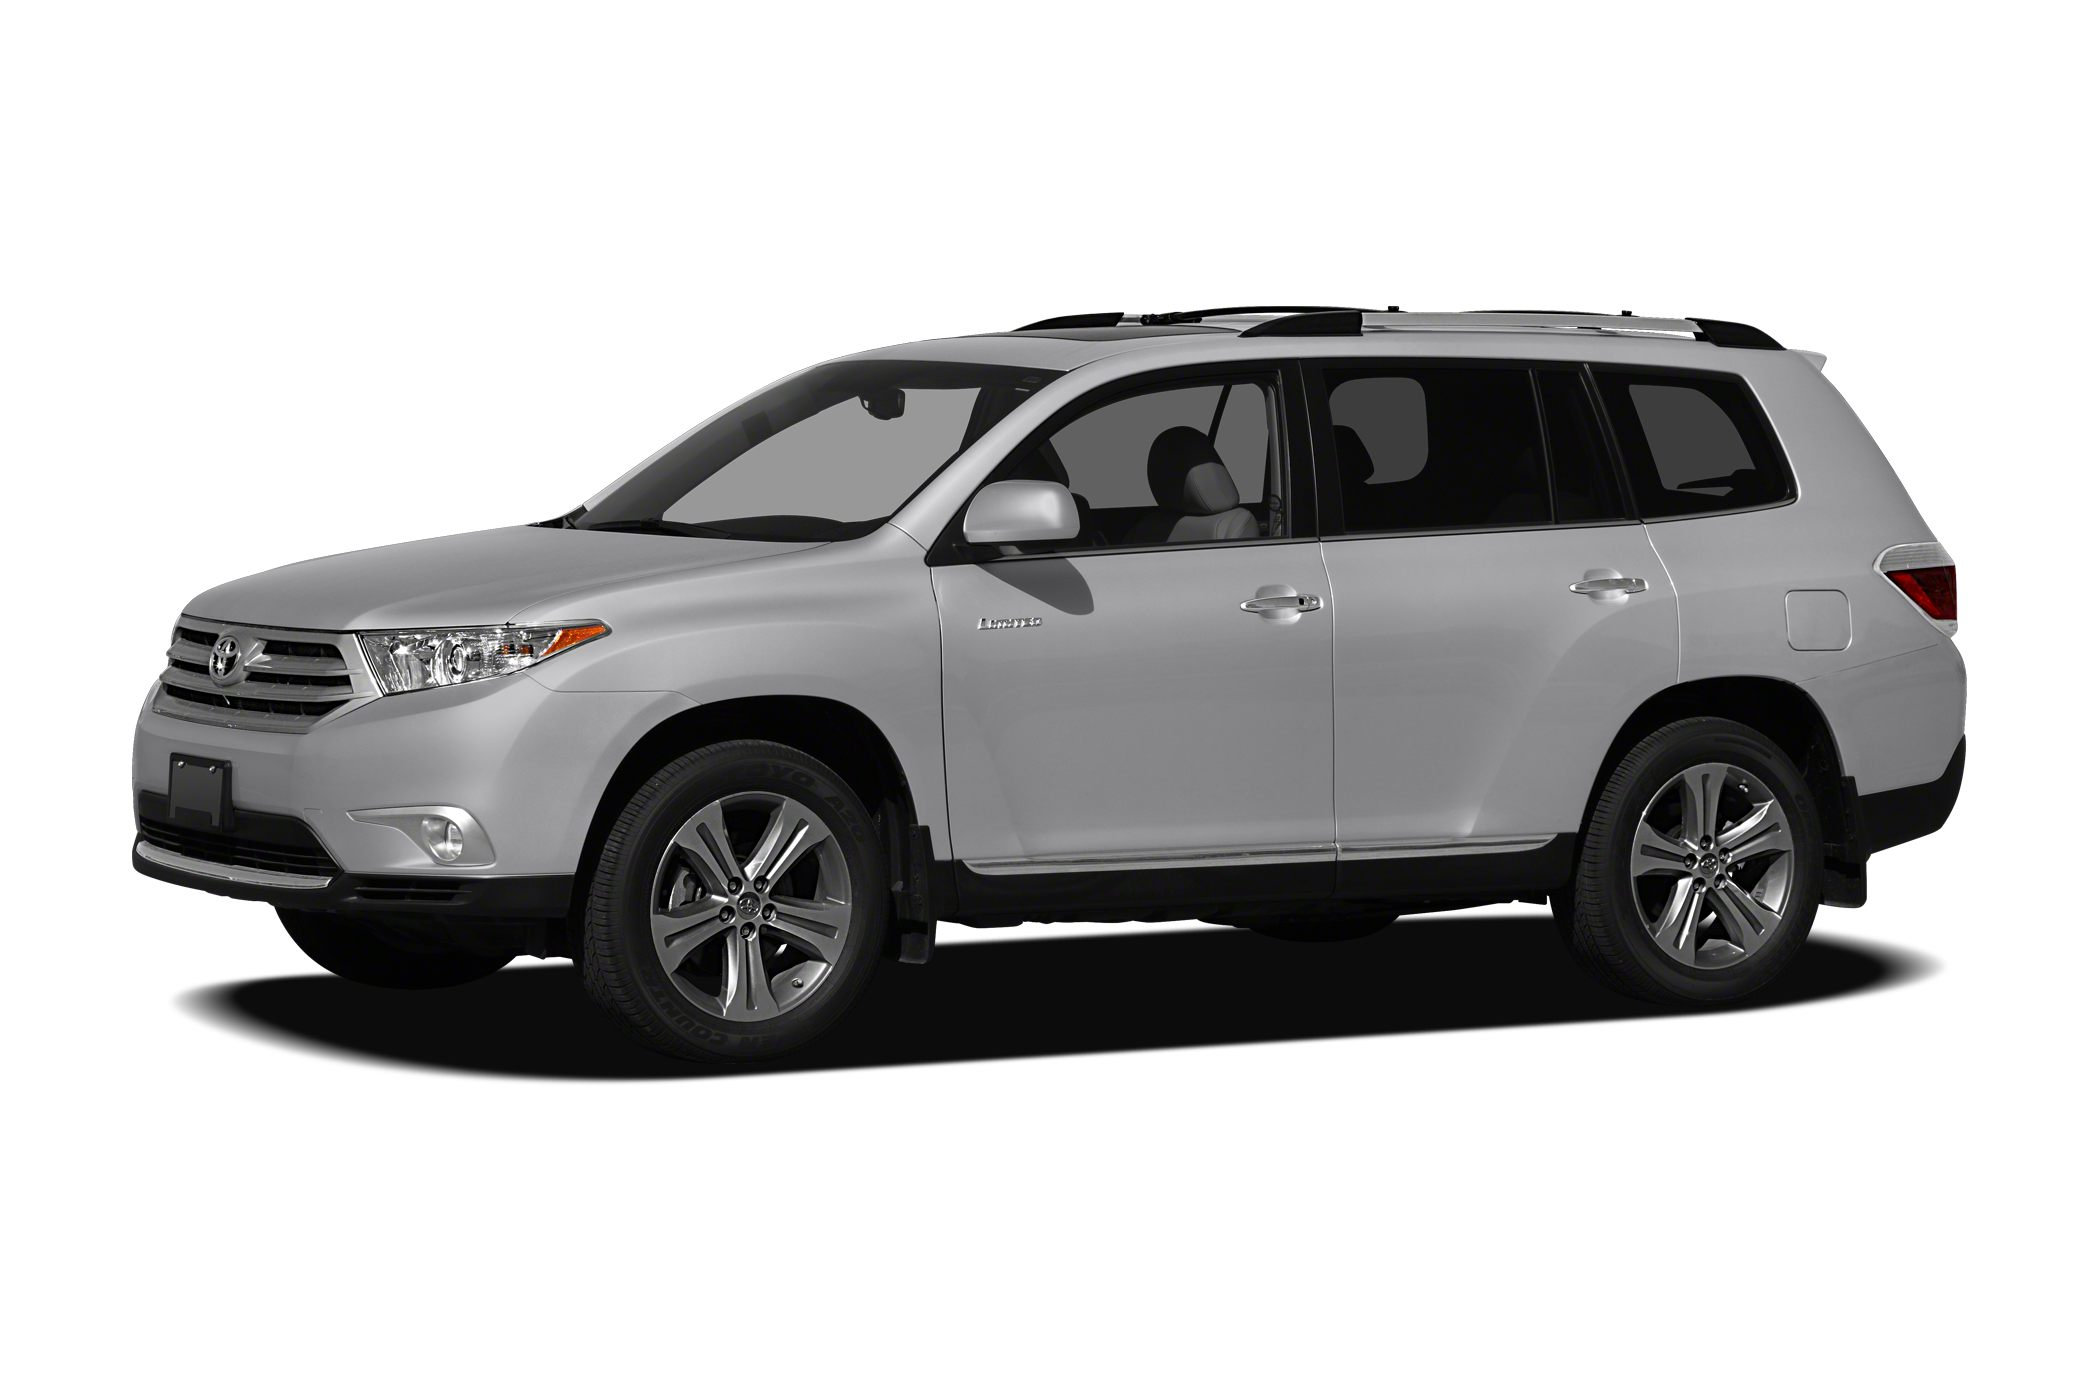 2012 Toyota Highlander SE SUV for sale in Chicago for $29,867 with 18,718 miles